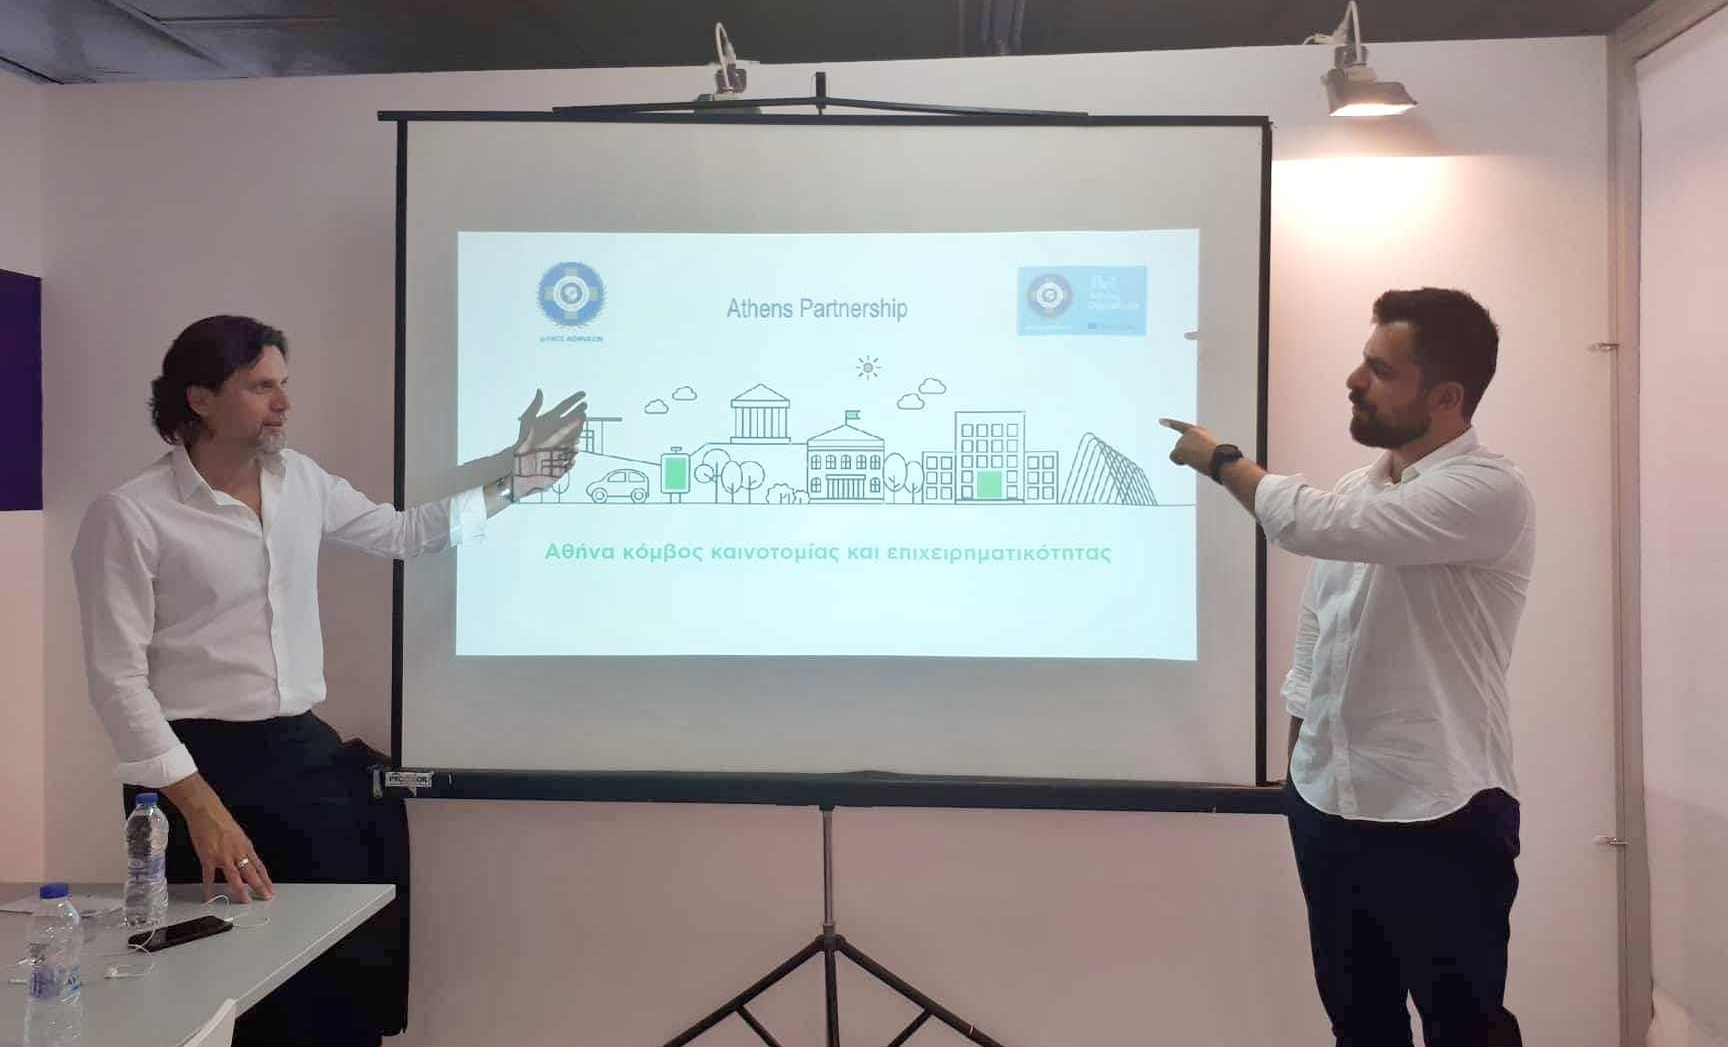 Athens Partnership Executive Director, Alexandros Kambouroglou and ADL project manager, Antonis Papadopoulos present a workshop on how public-private partnerships can be the key to unleashing smart city potential, at the 83rd Thessaloniki International Fair.